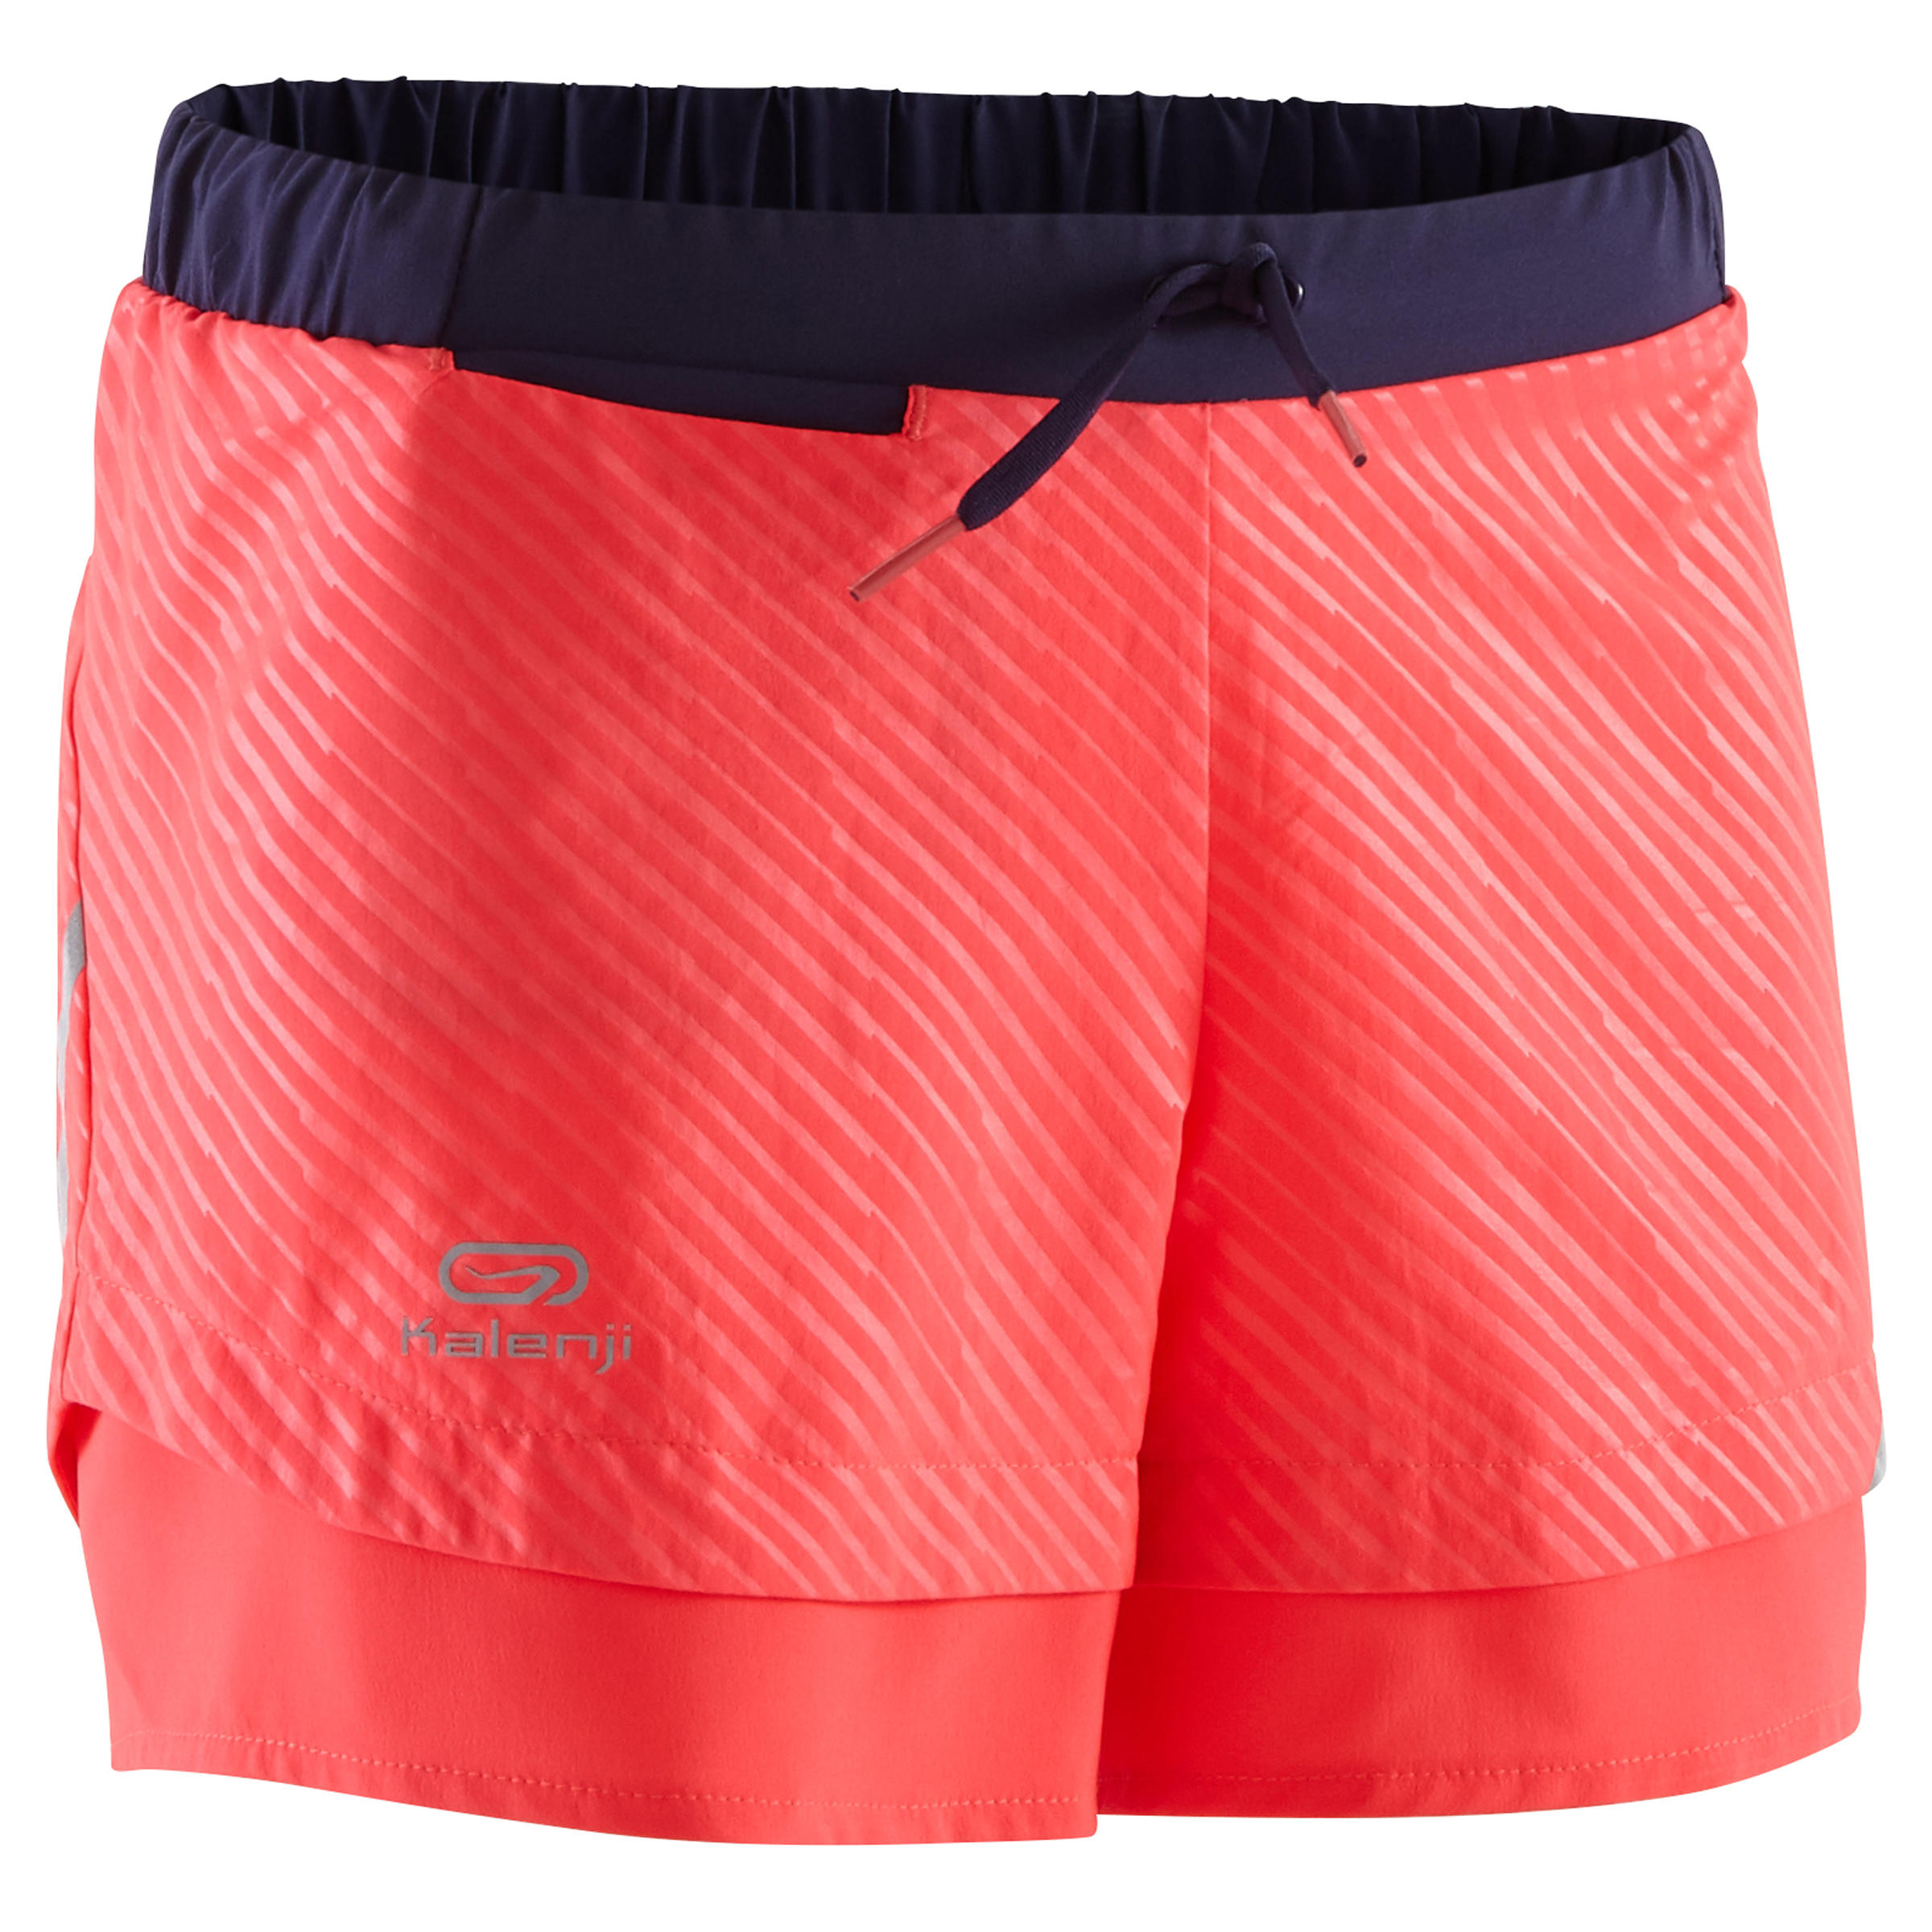 Run Dry children's athletics shorts fluorescent coral